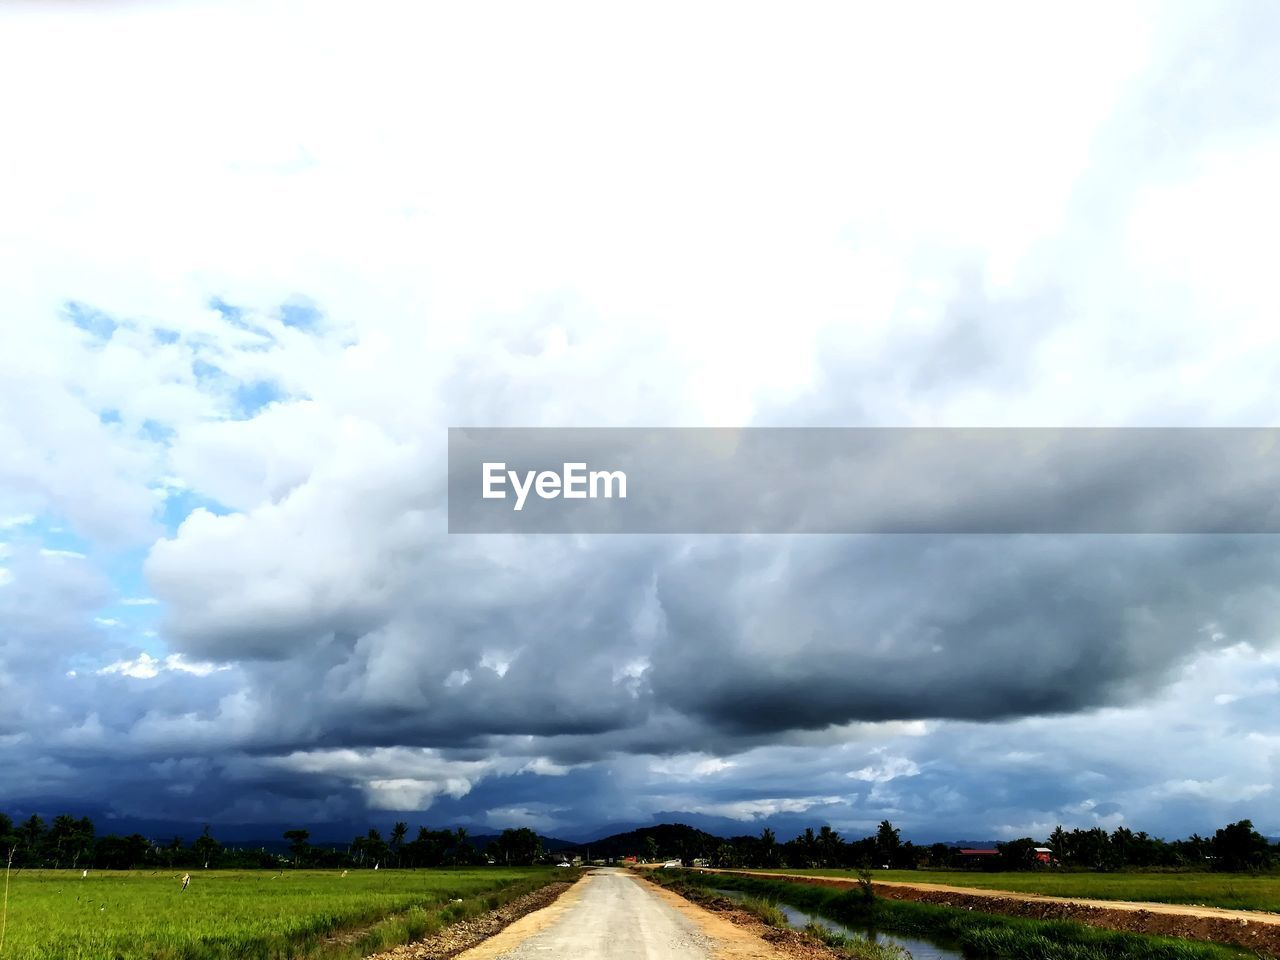 landscape, cloud - sky, field, nature, sky, scenics, road, day, outdoors, beauty in nature, tranquility, transportation, rural scene, the way forward, no people, tree, grass